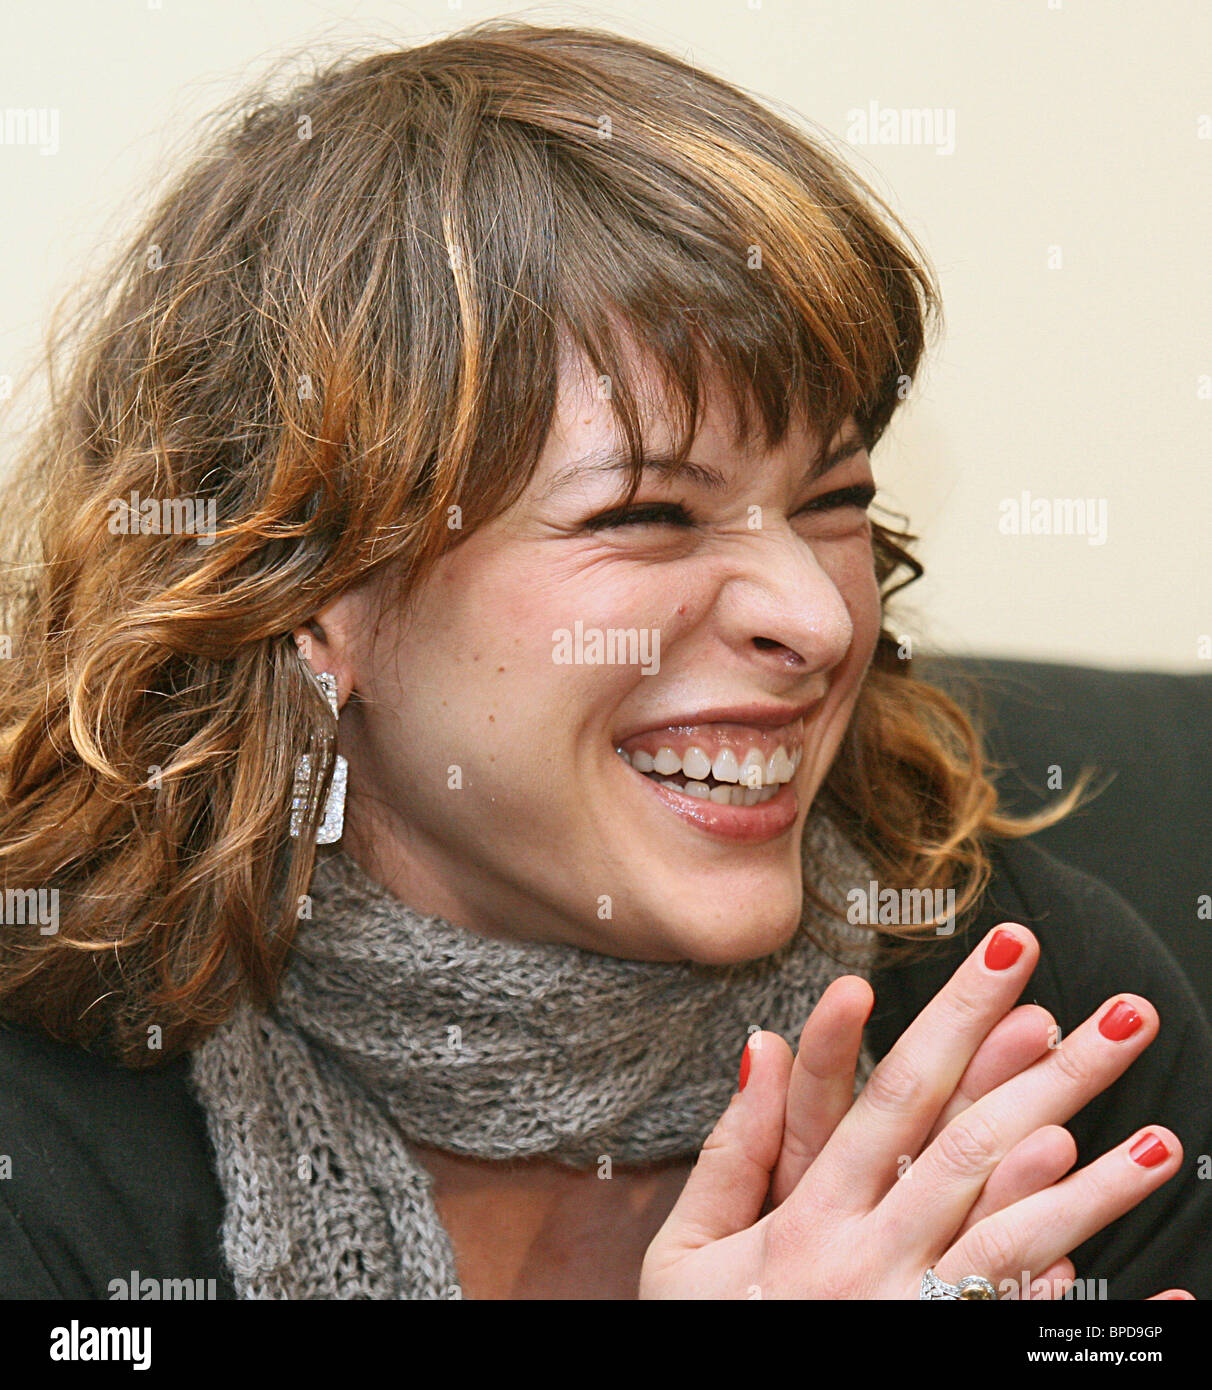 Hollywood actress Milla Jovovich arrives Moscow to promote new jewelry collection by Bvlgari - Stock Image